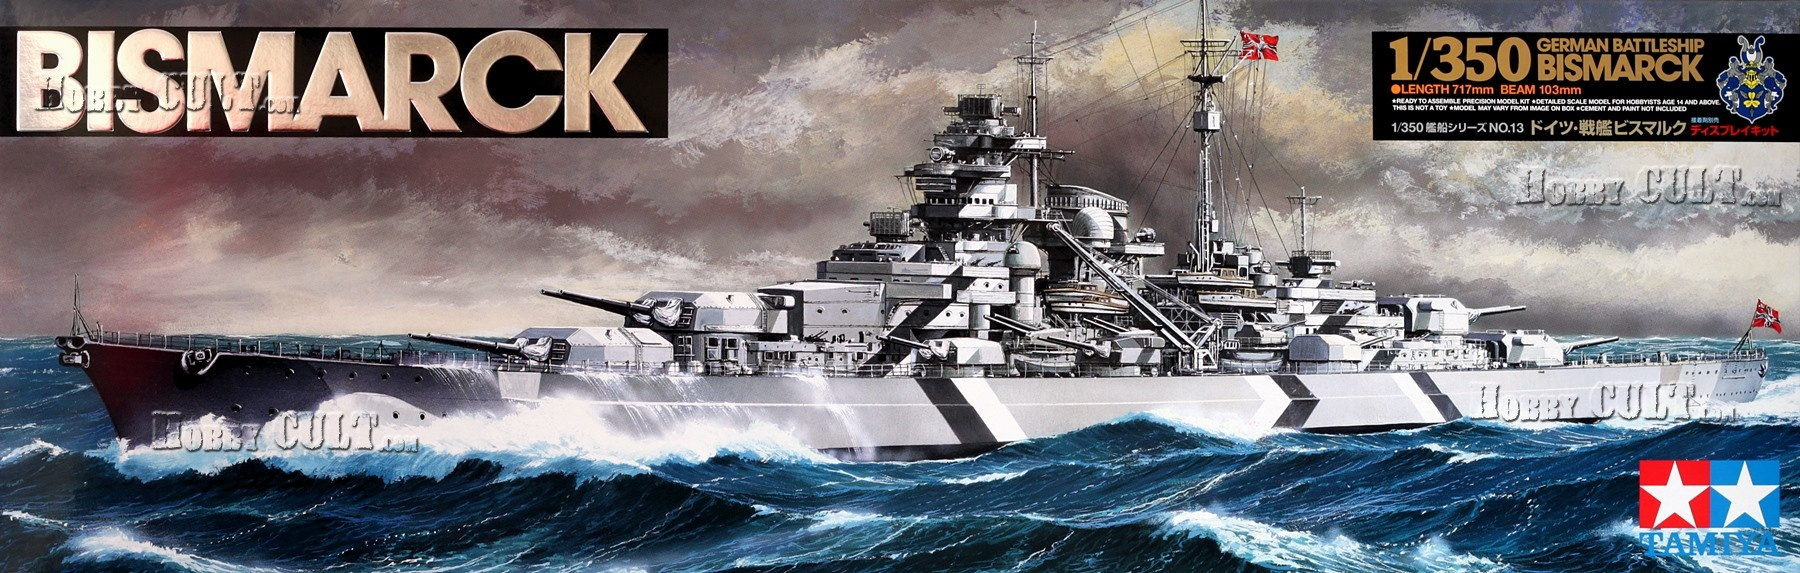 1:350 German Battleship Bismarck